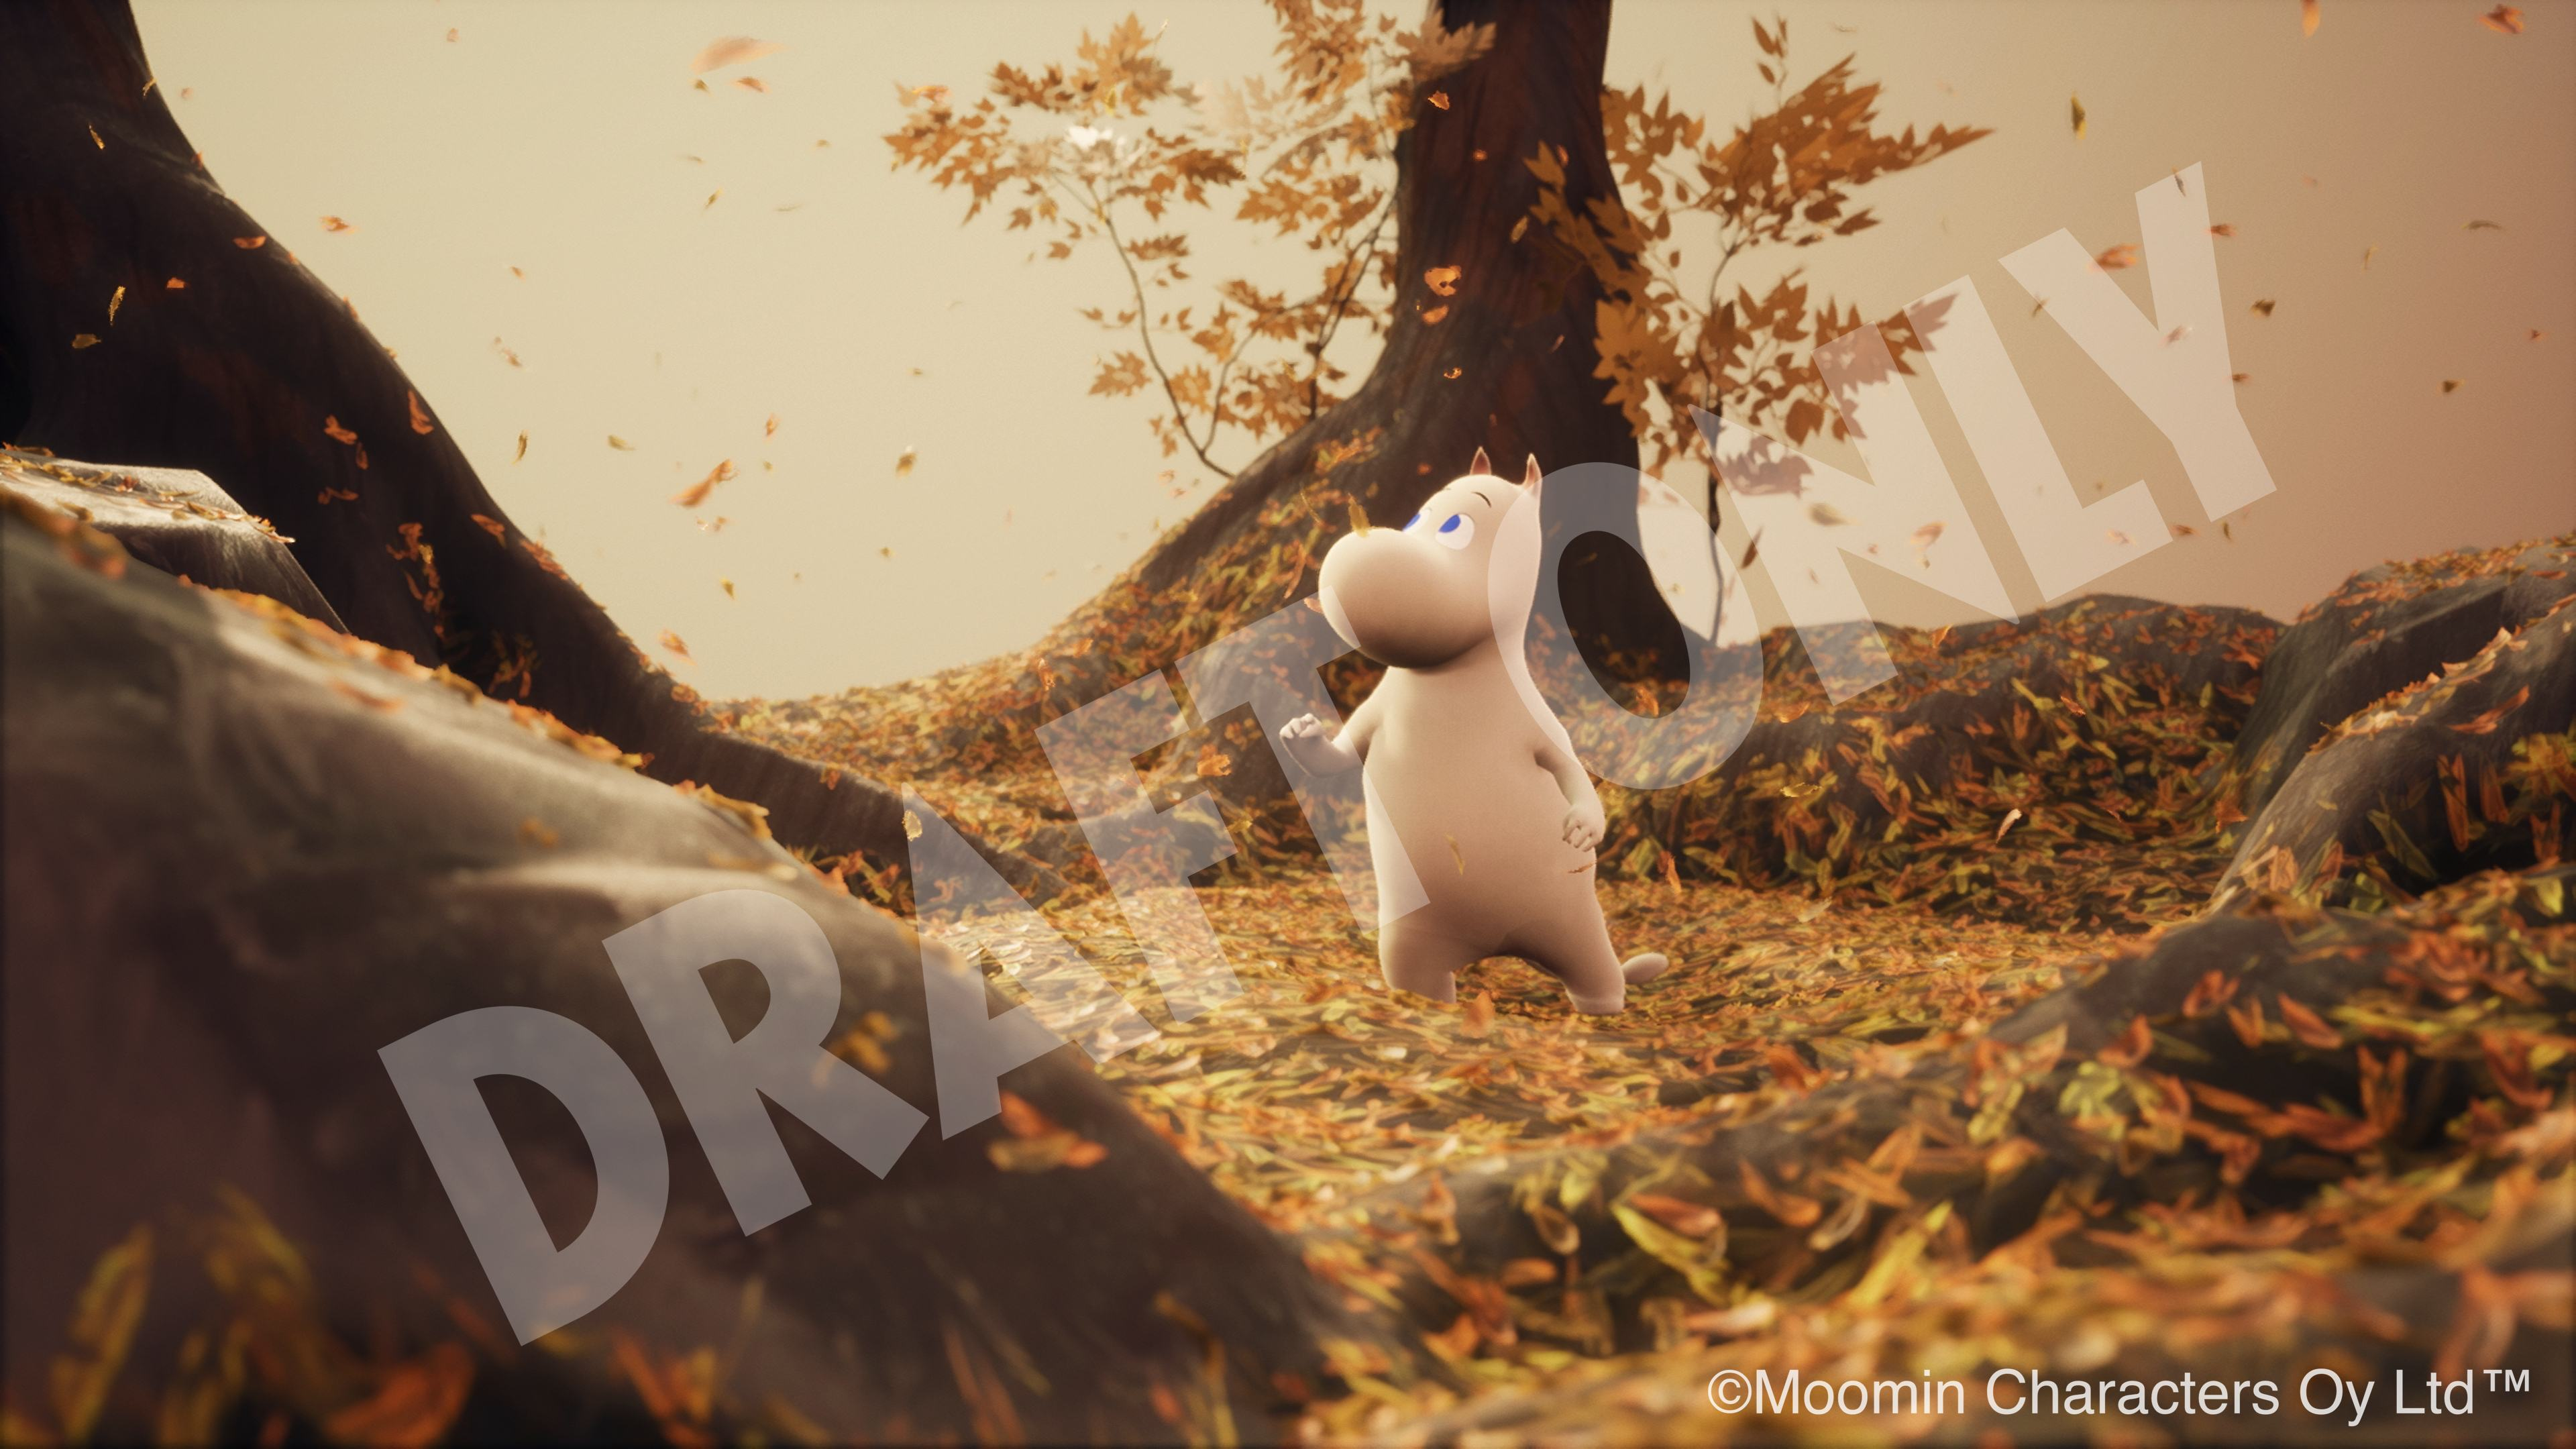 As the official VR partner of Moomin Characters, ZOAN has been tasked with recreating Moominvalley and its beloved characters in virtual reality.